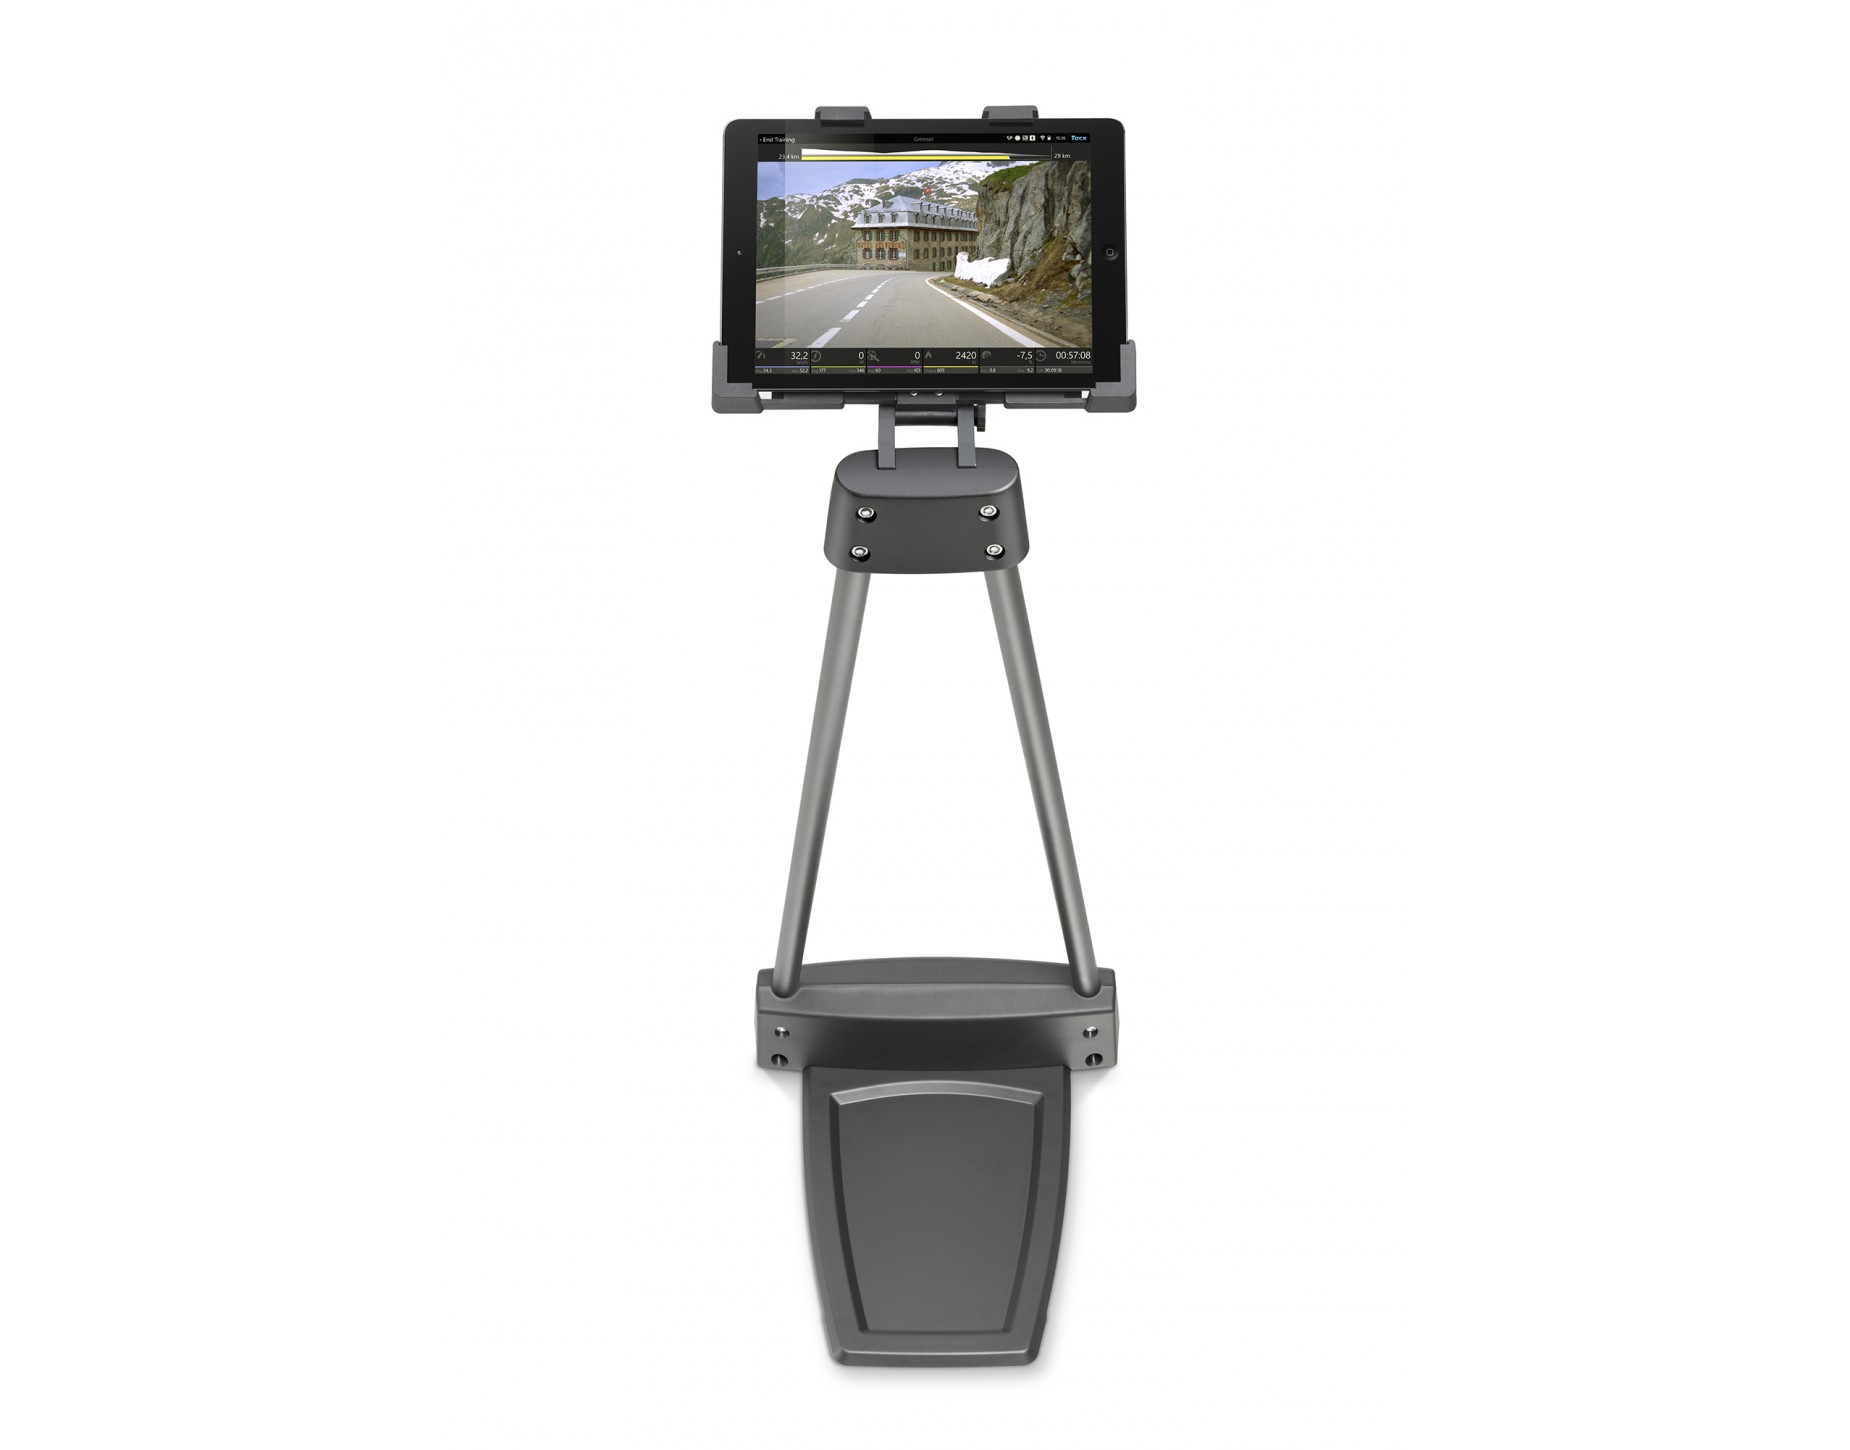 Tacx T2098 Tablet Stand Offers At The Cycling Shop Rose Bikes